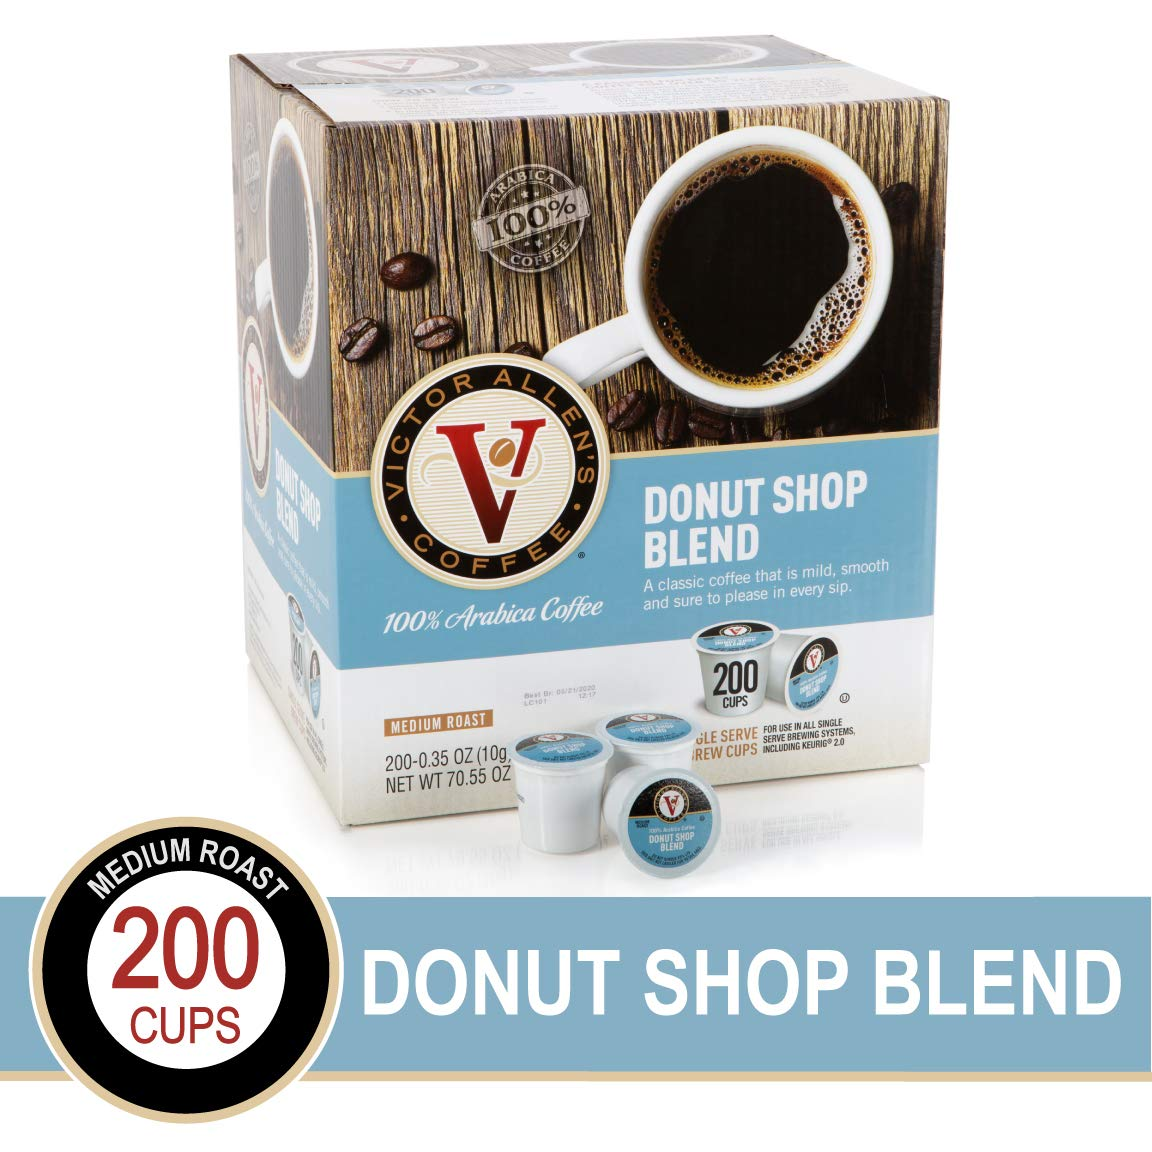 Donut Shop Blend for K-Cup Keurig 2.0 Brewers, 200 Count, Victor Allen's Coffee Medium Roast Single Serve Coffee Pods by Victor Allen's coffee